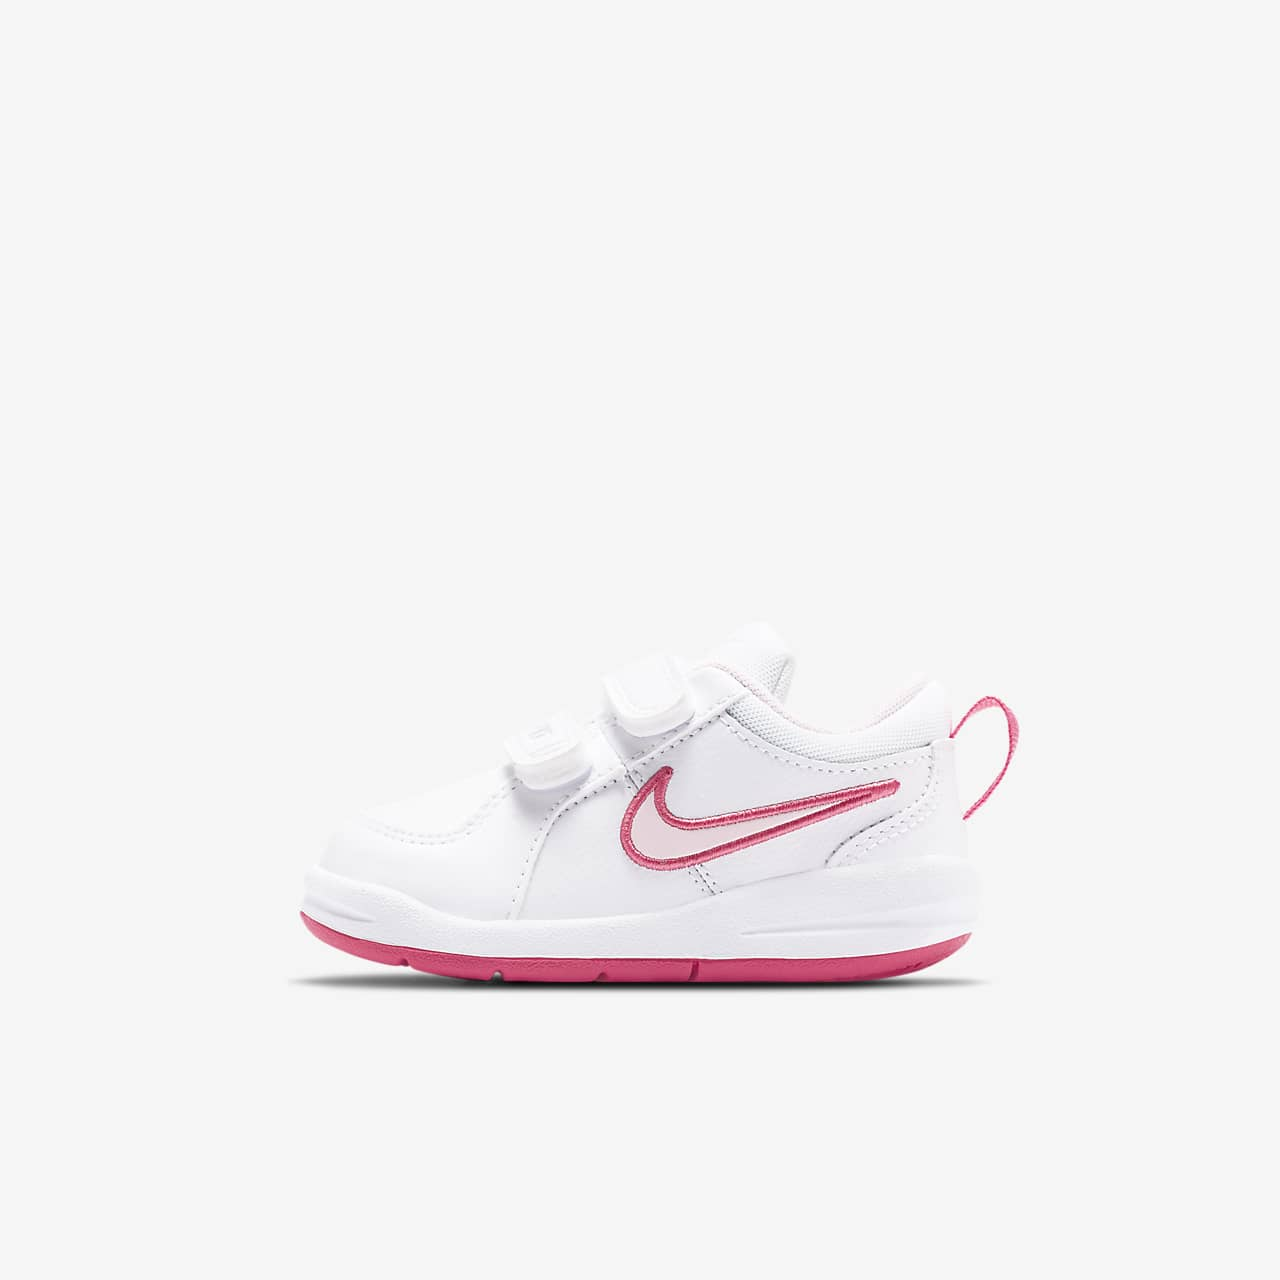 4948e01ec2 Nike Pico 4 (1.5–9.5) Baby and Toddler Girls' Shoe. Nike.com AE